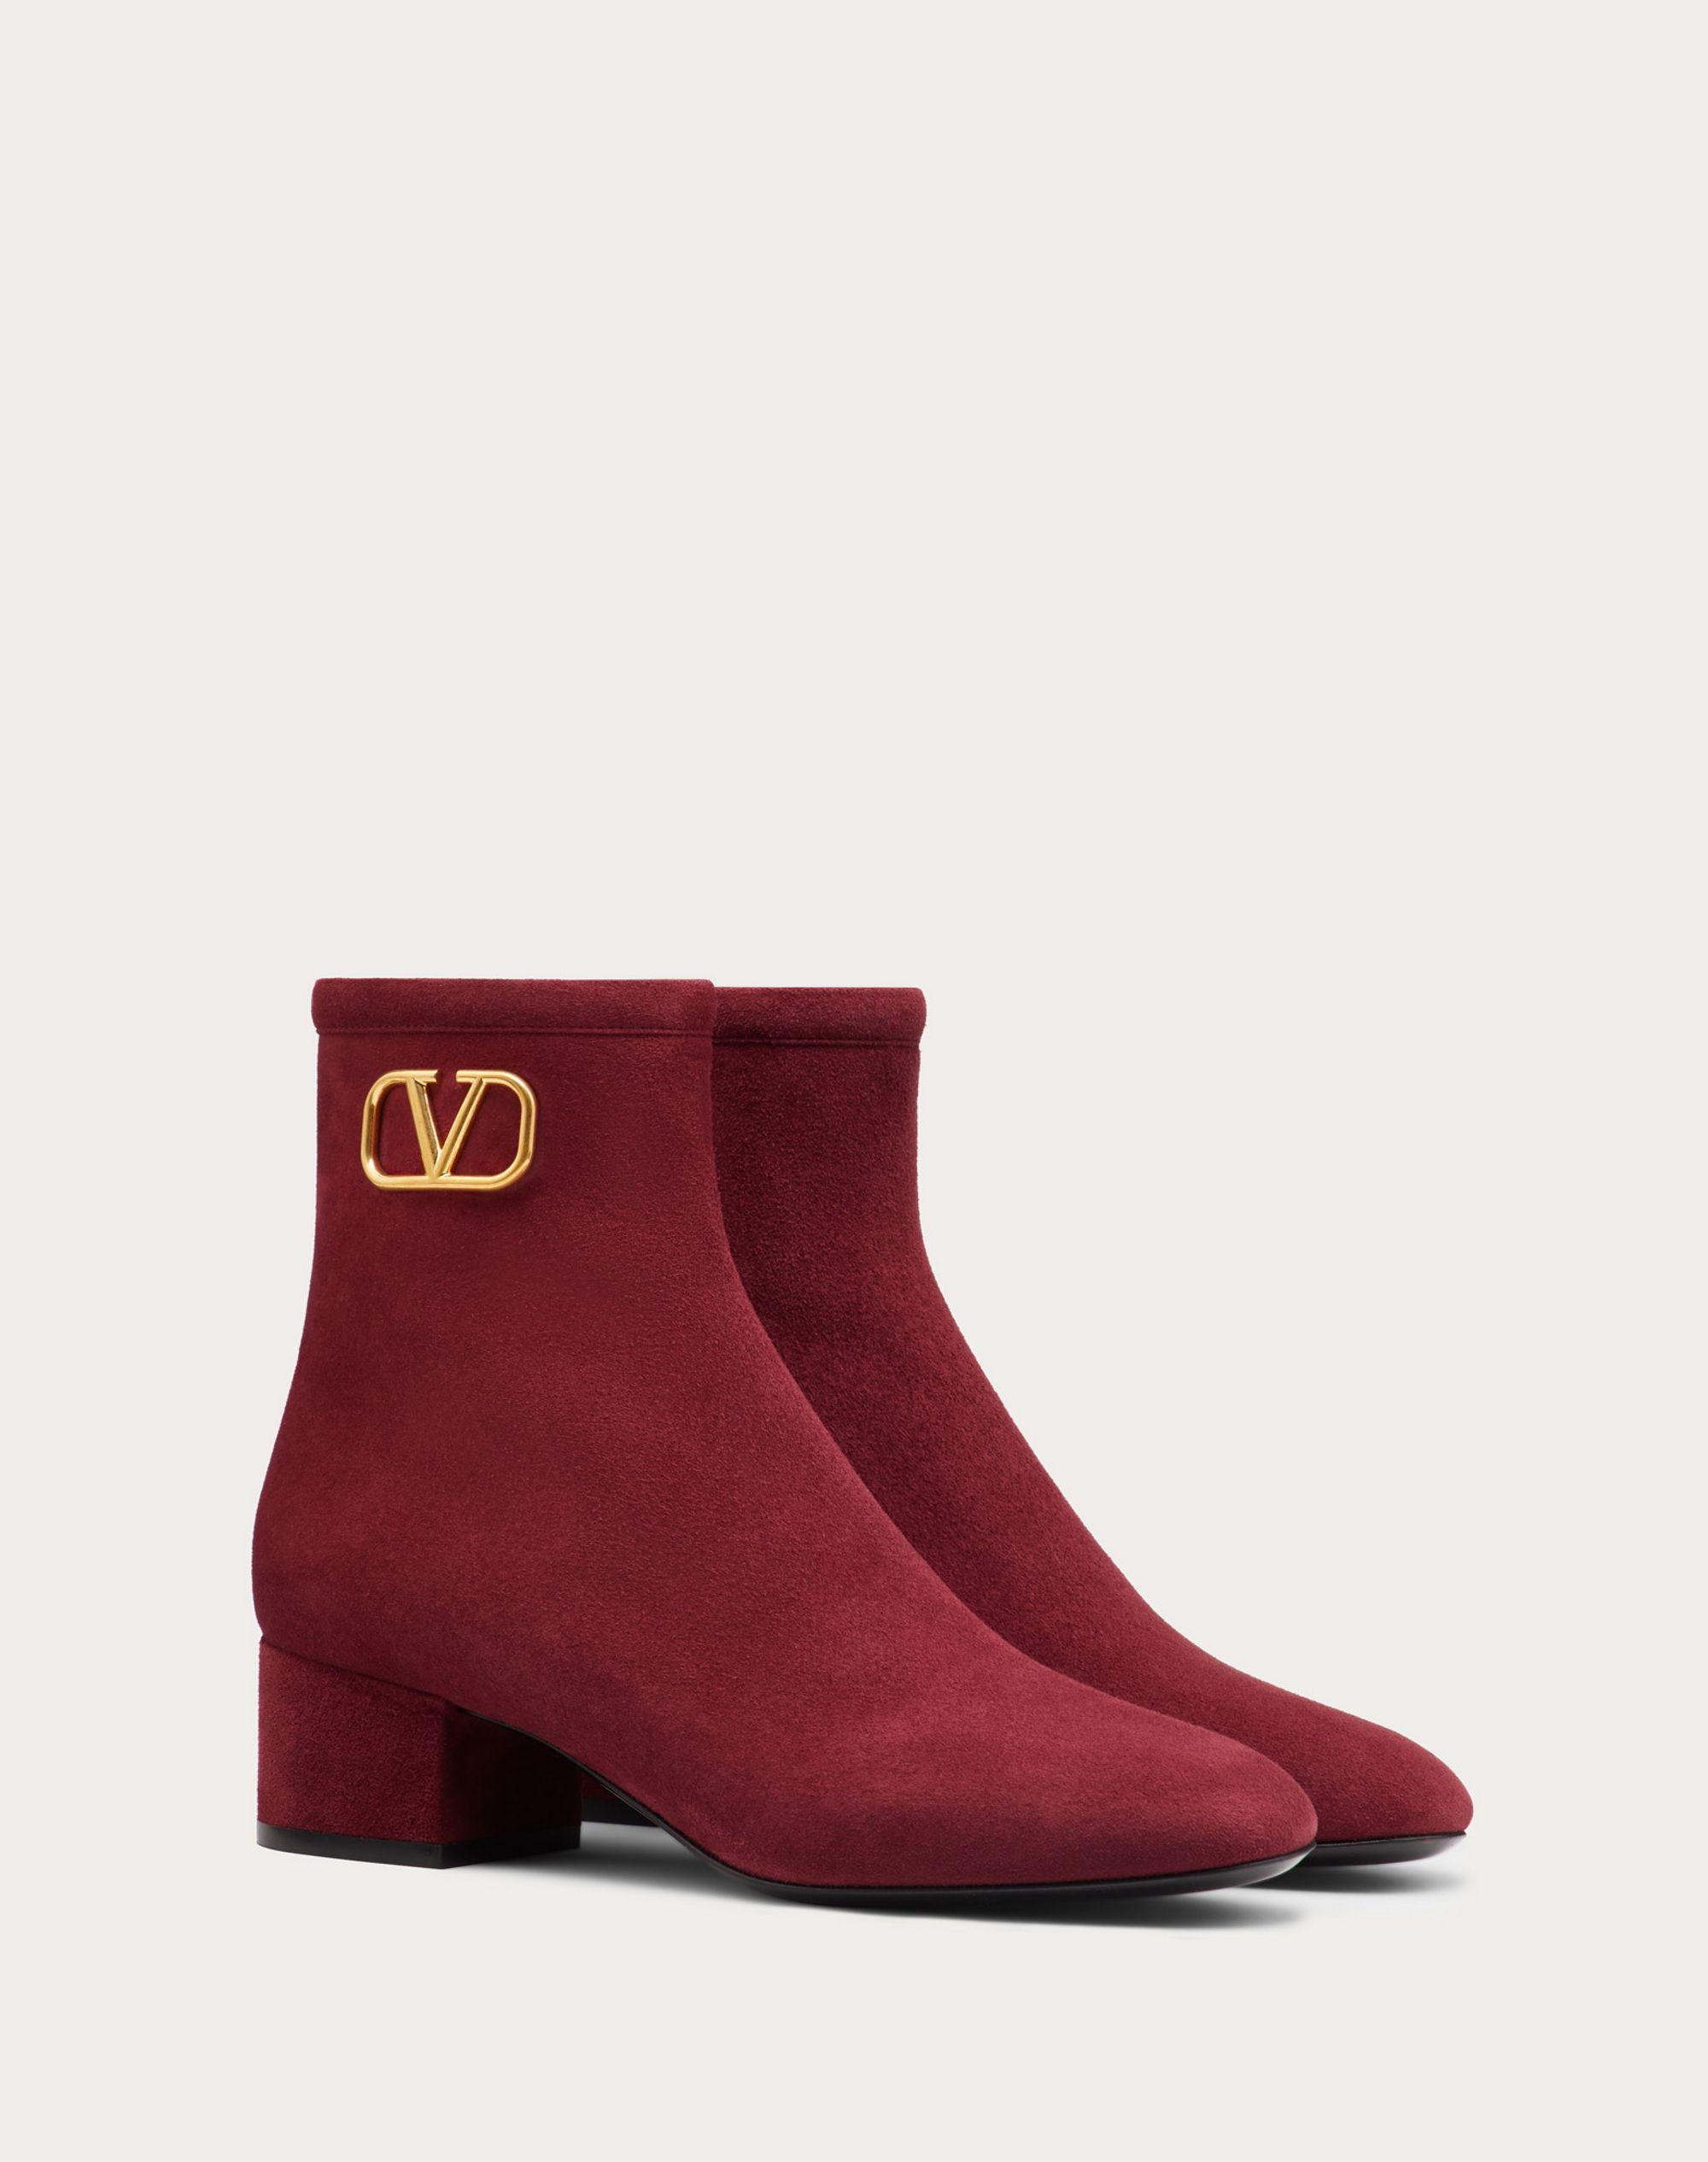 VLogo Signature Suede Ankle Boot 45 mm / 1.8 in. 1